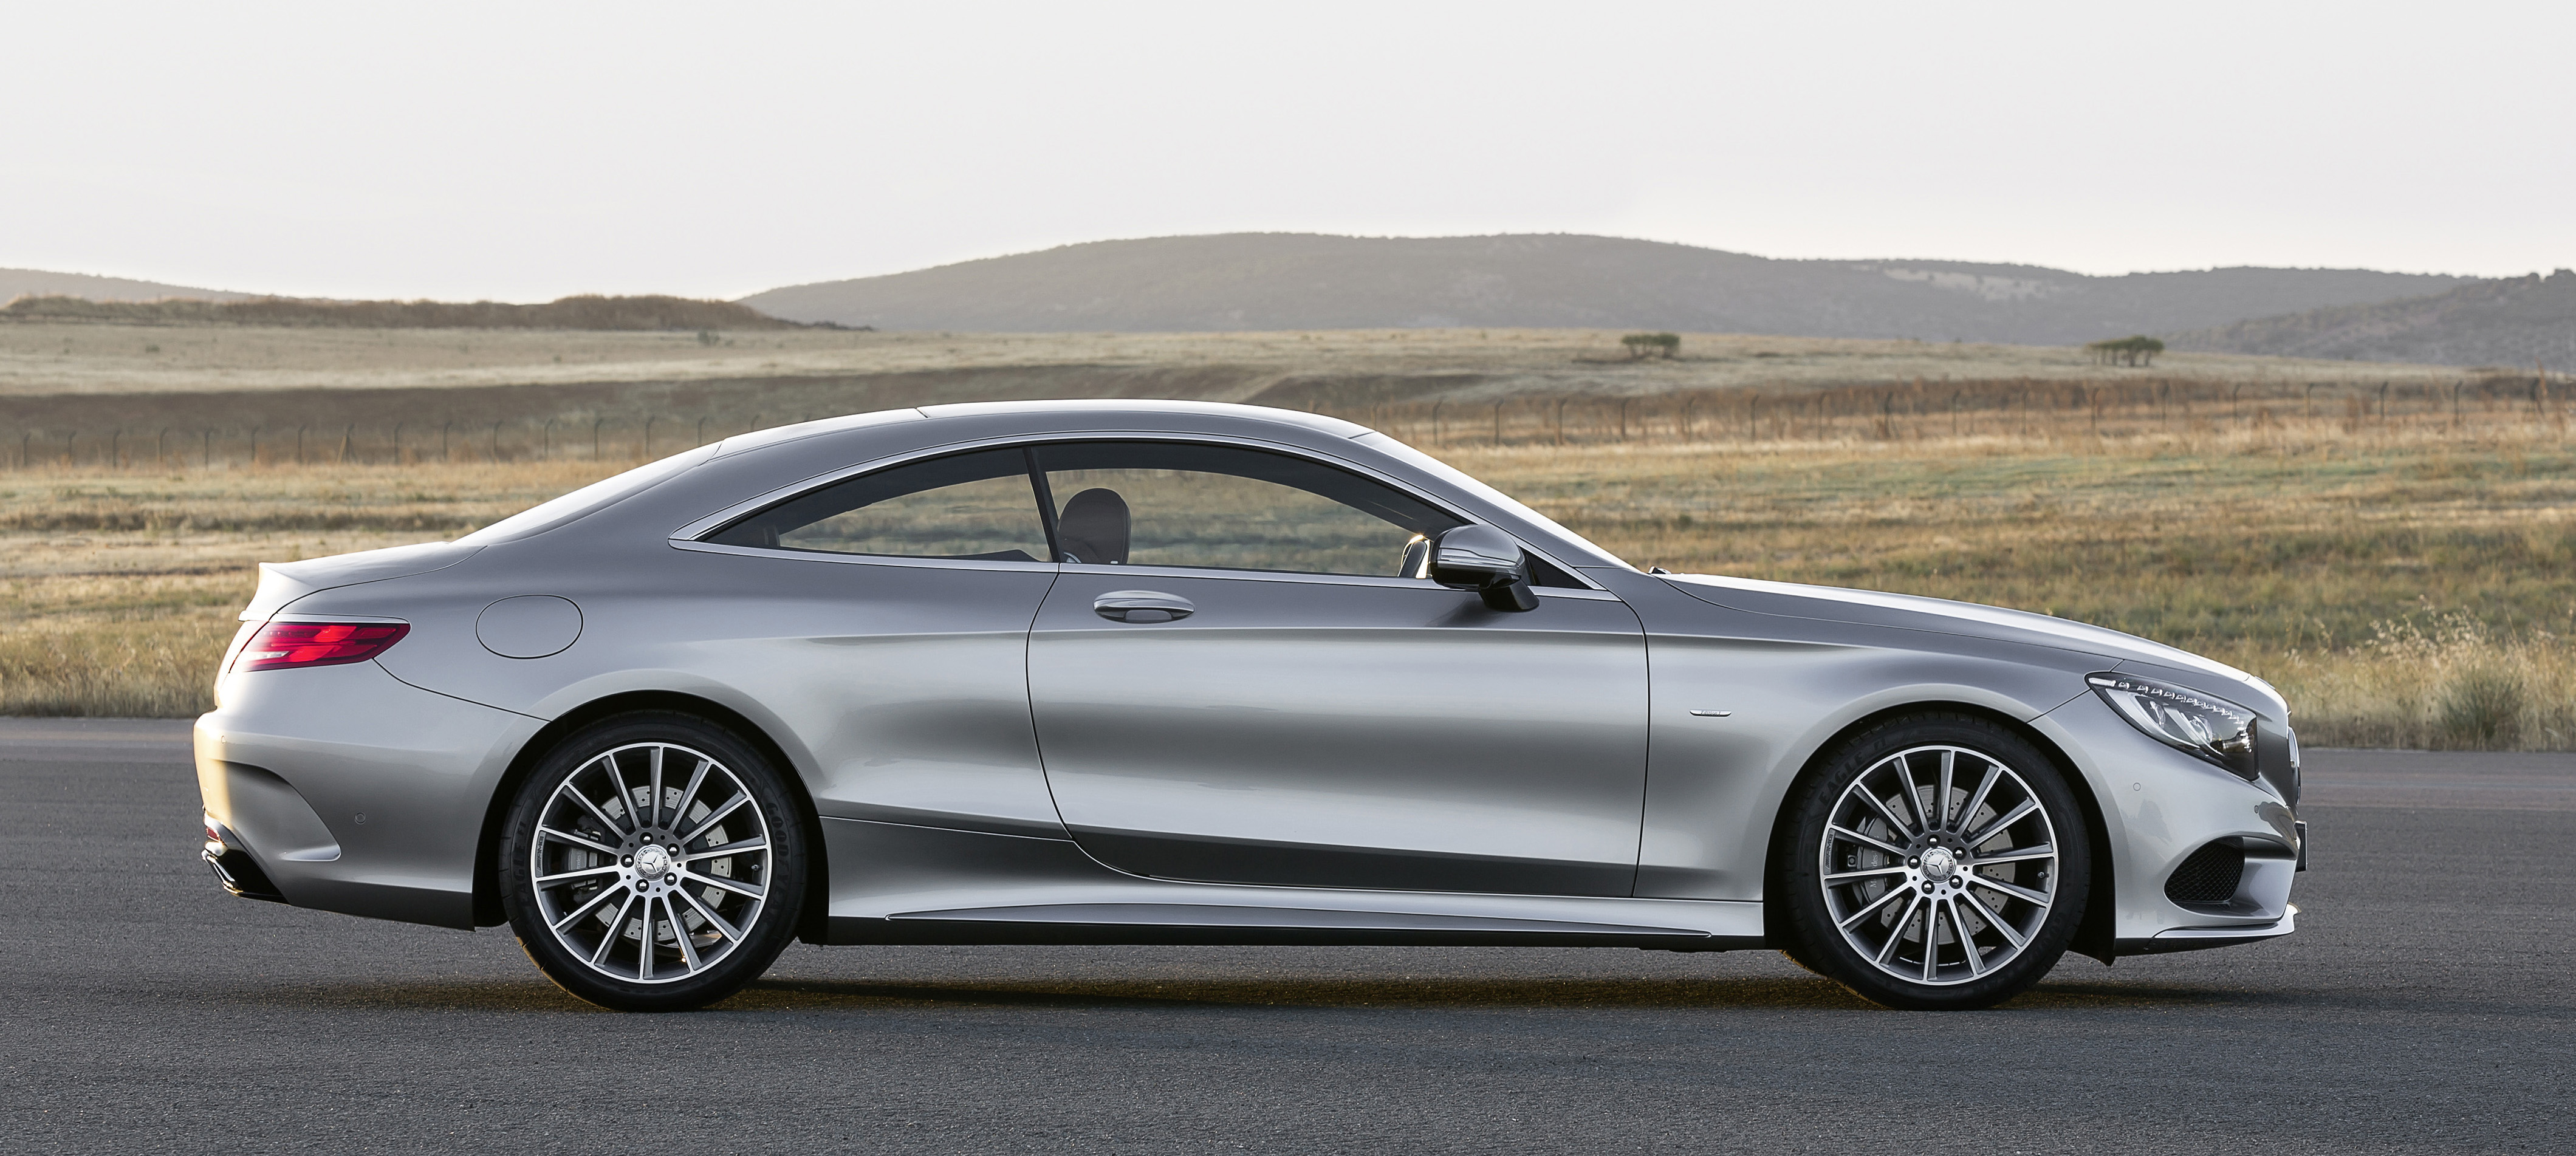 Mercedes-Benz S-Class Coupe – crystal clear details Paul ...